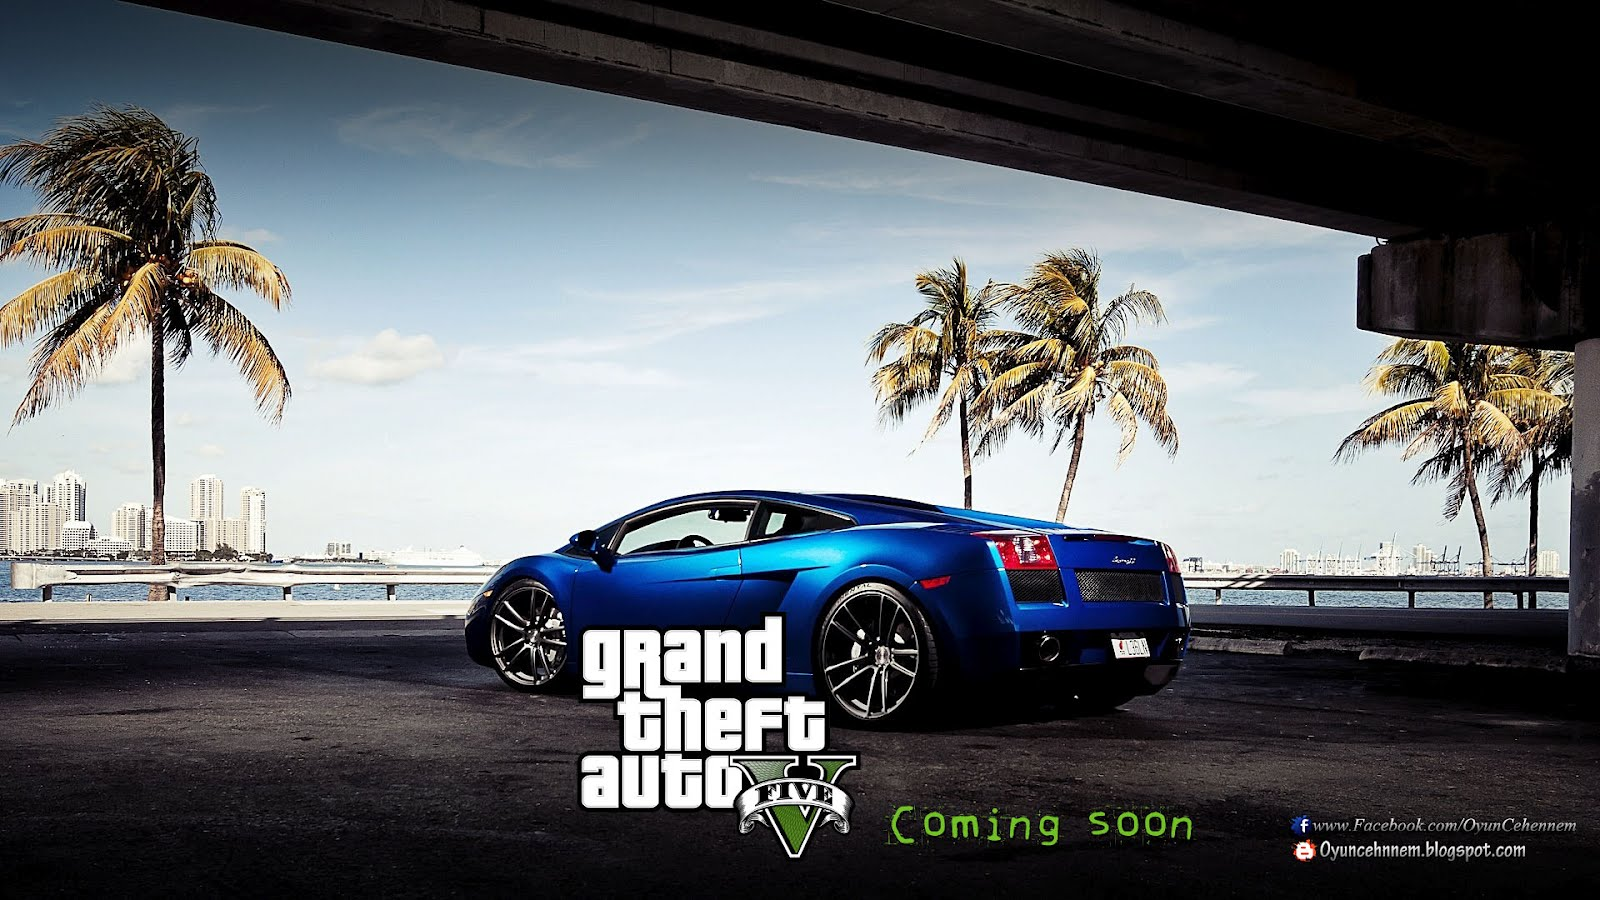 48 gta 5 1080p wallpaper on wallpapersafari - Gta v wallpaper ...